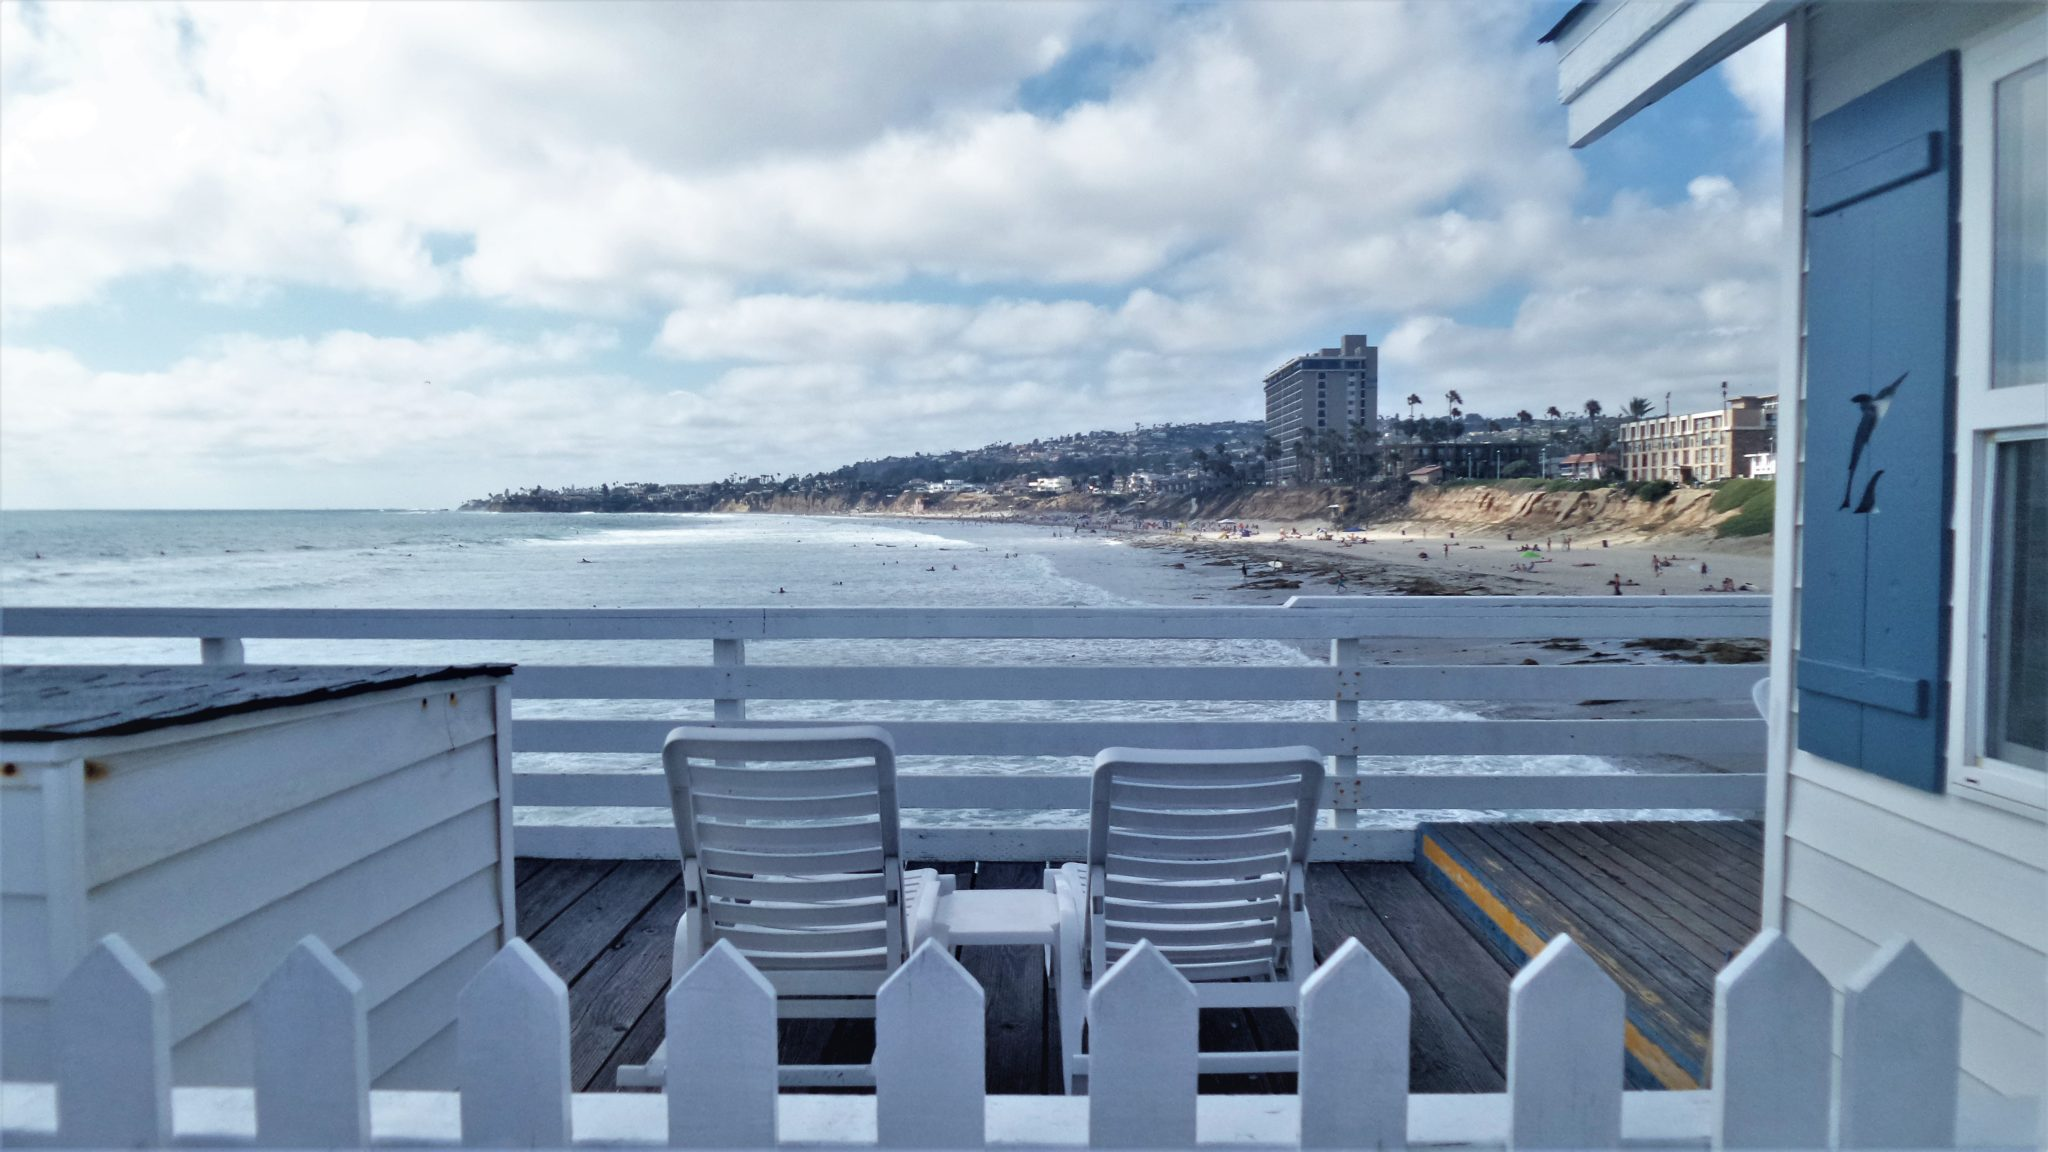 Pacific Beach hotel and cottages, things to do in San Diego, California